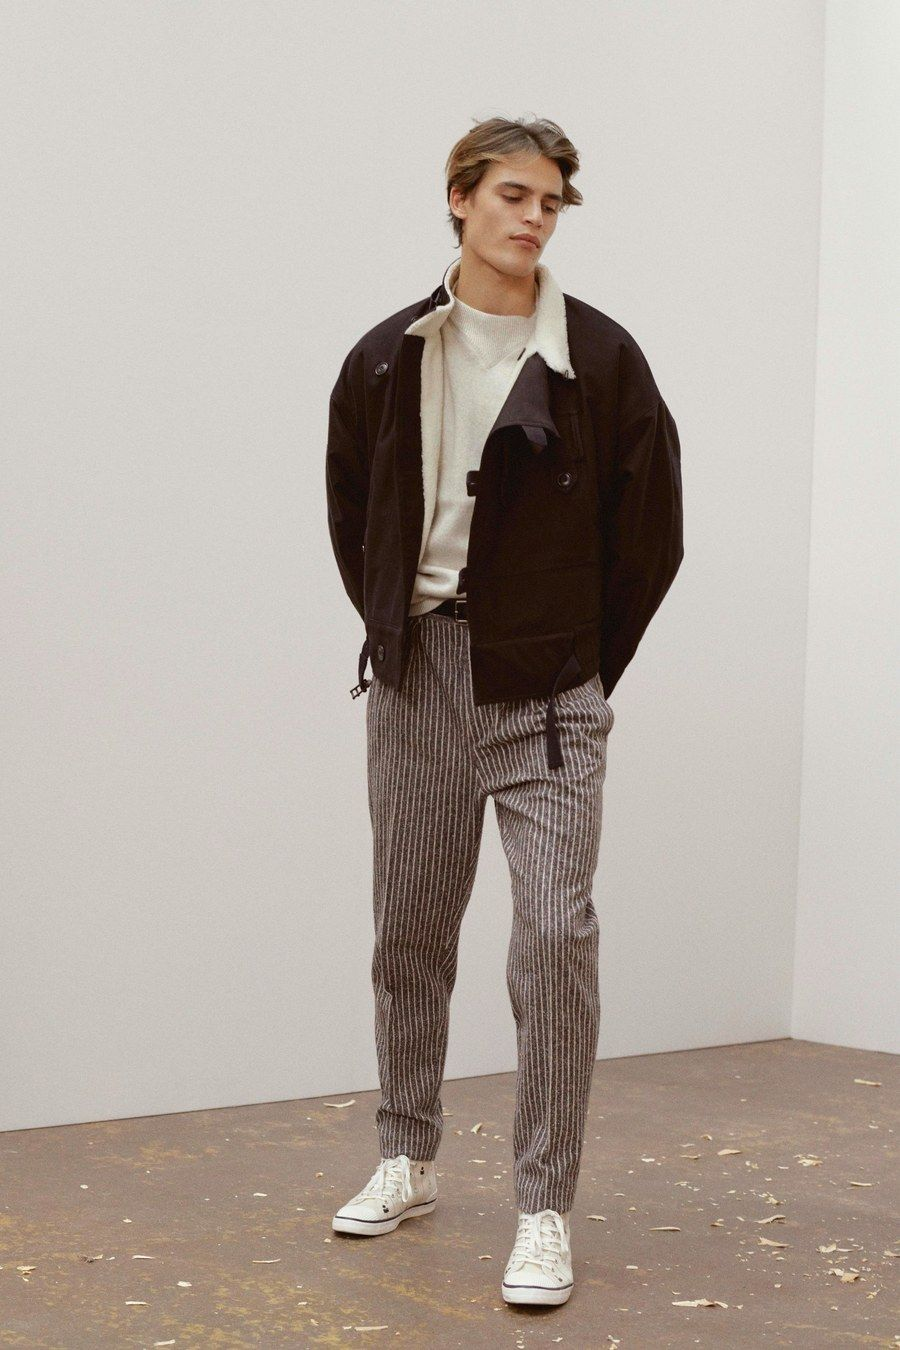 Isabel Marant Fall 2019 Menswear Fashion Show